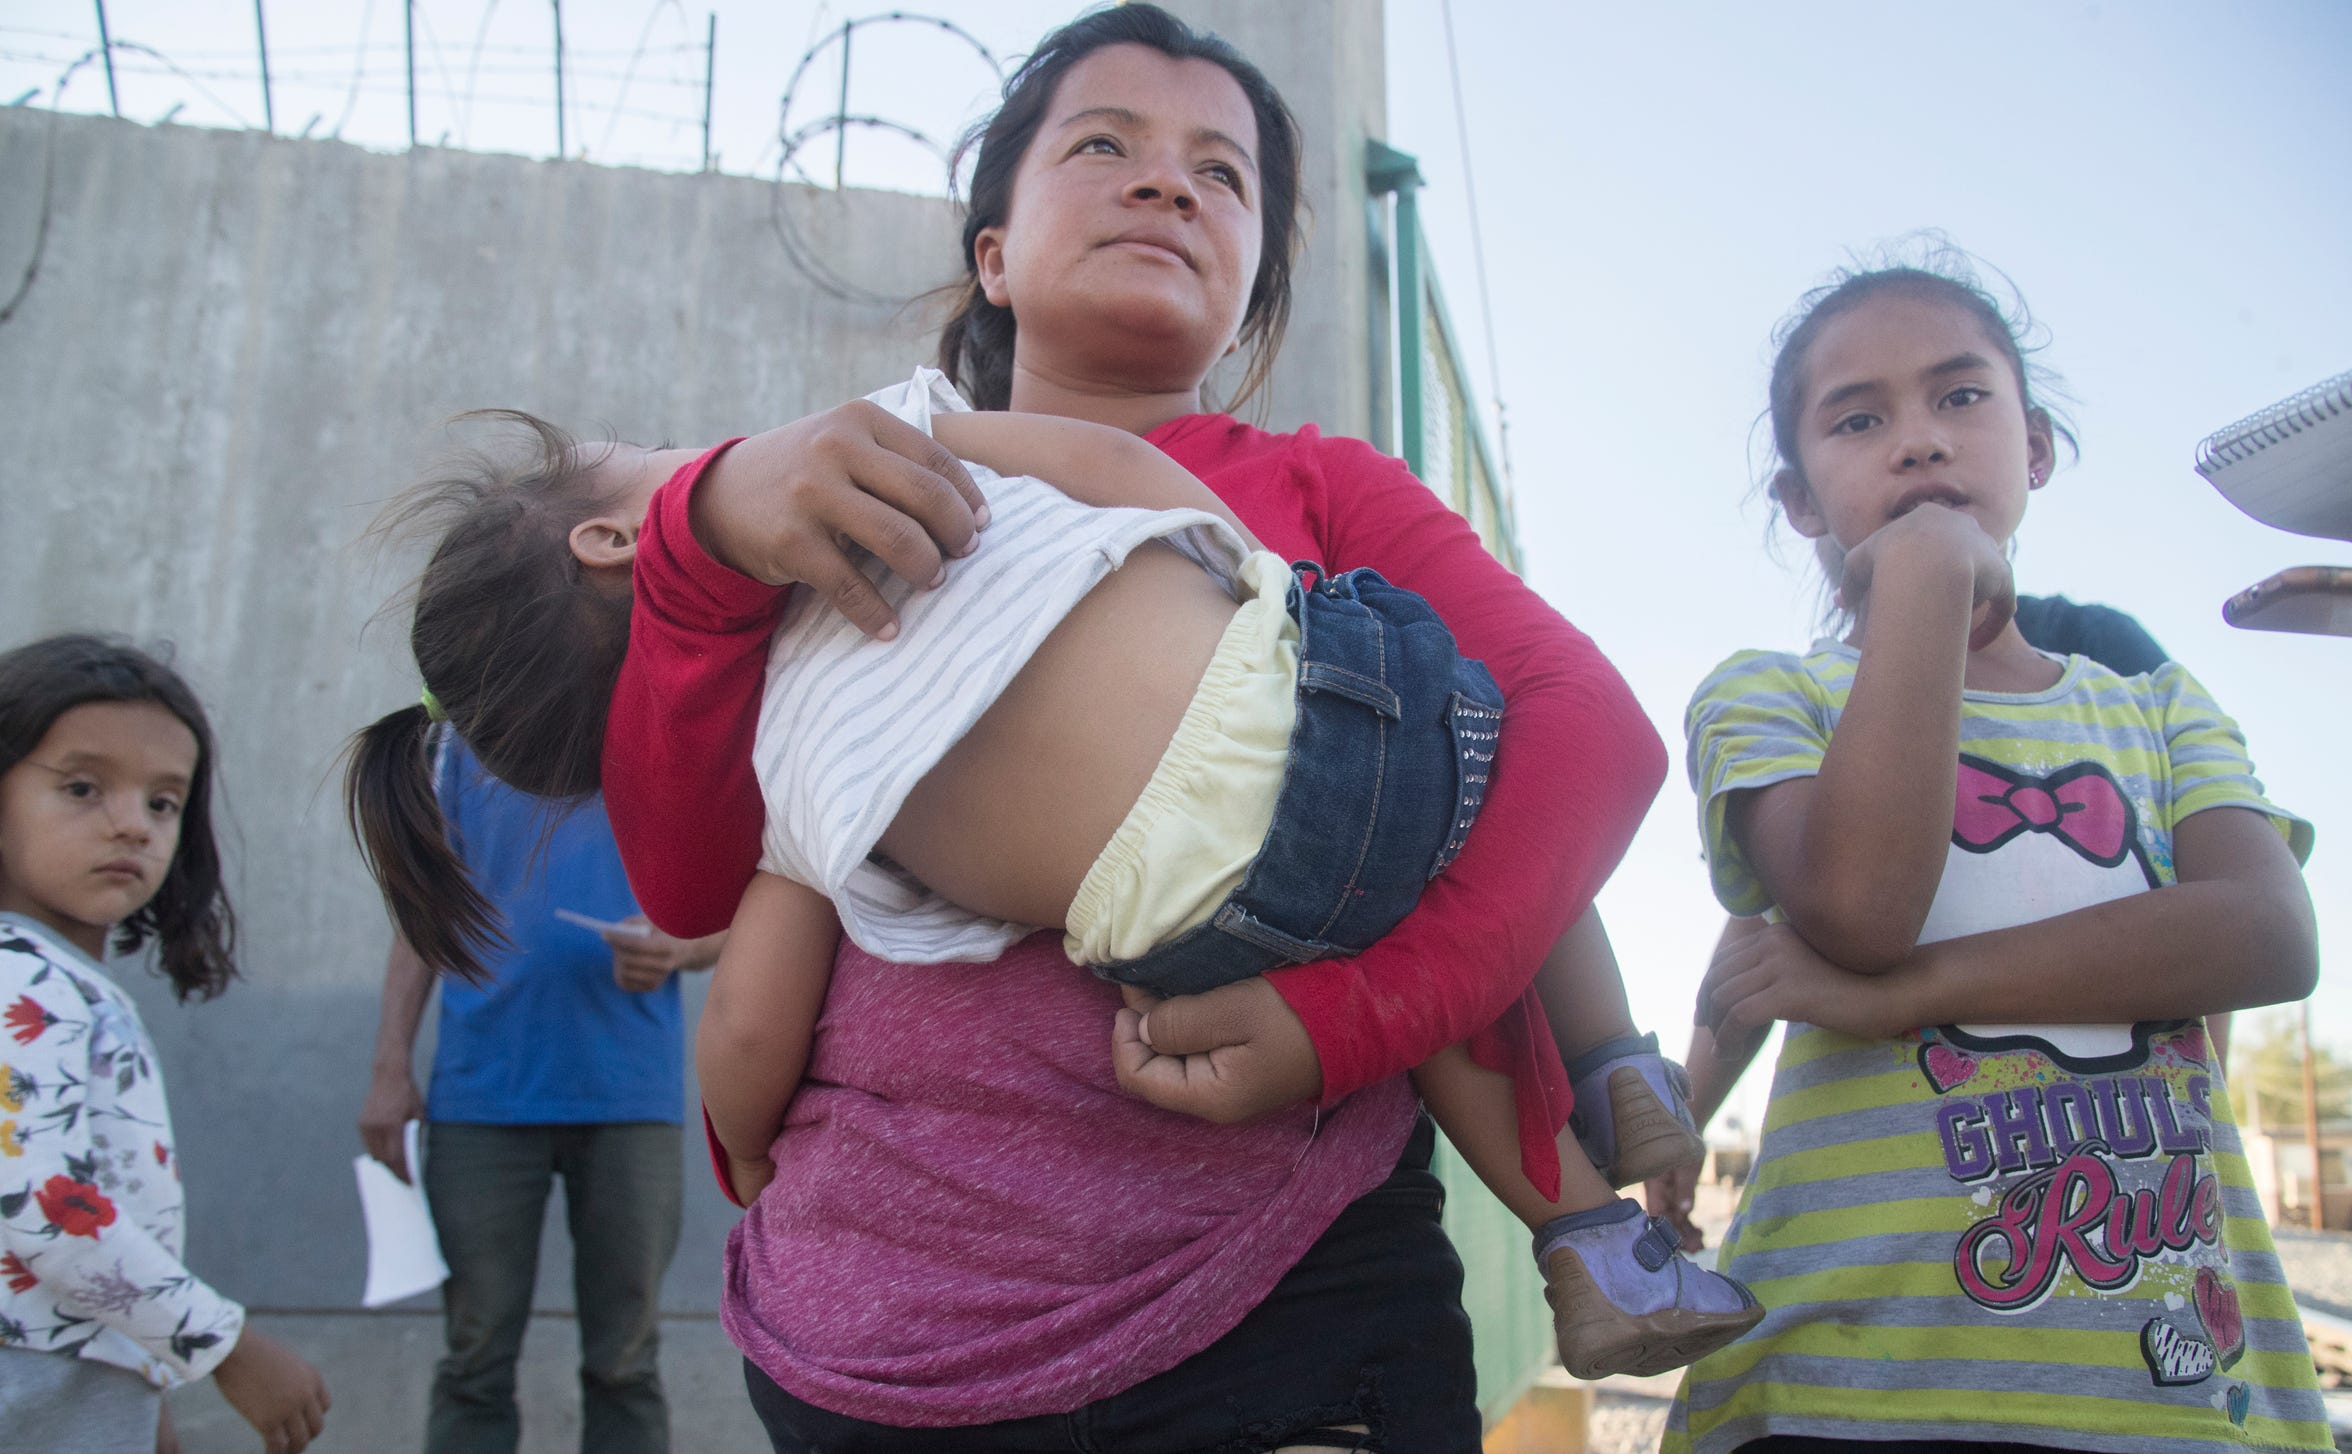 Evelin Ponce holds her 2-year old daughter, Evelin, while her other daughters, Fernanda, 9, right, and Anais, 6, flank her as they wait for a train they can jump aboard to take them south out of Mexicali, Mexico.